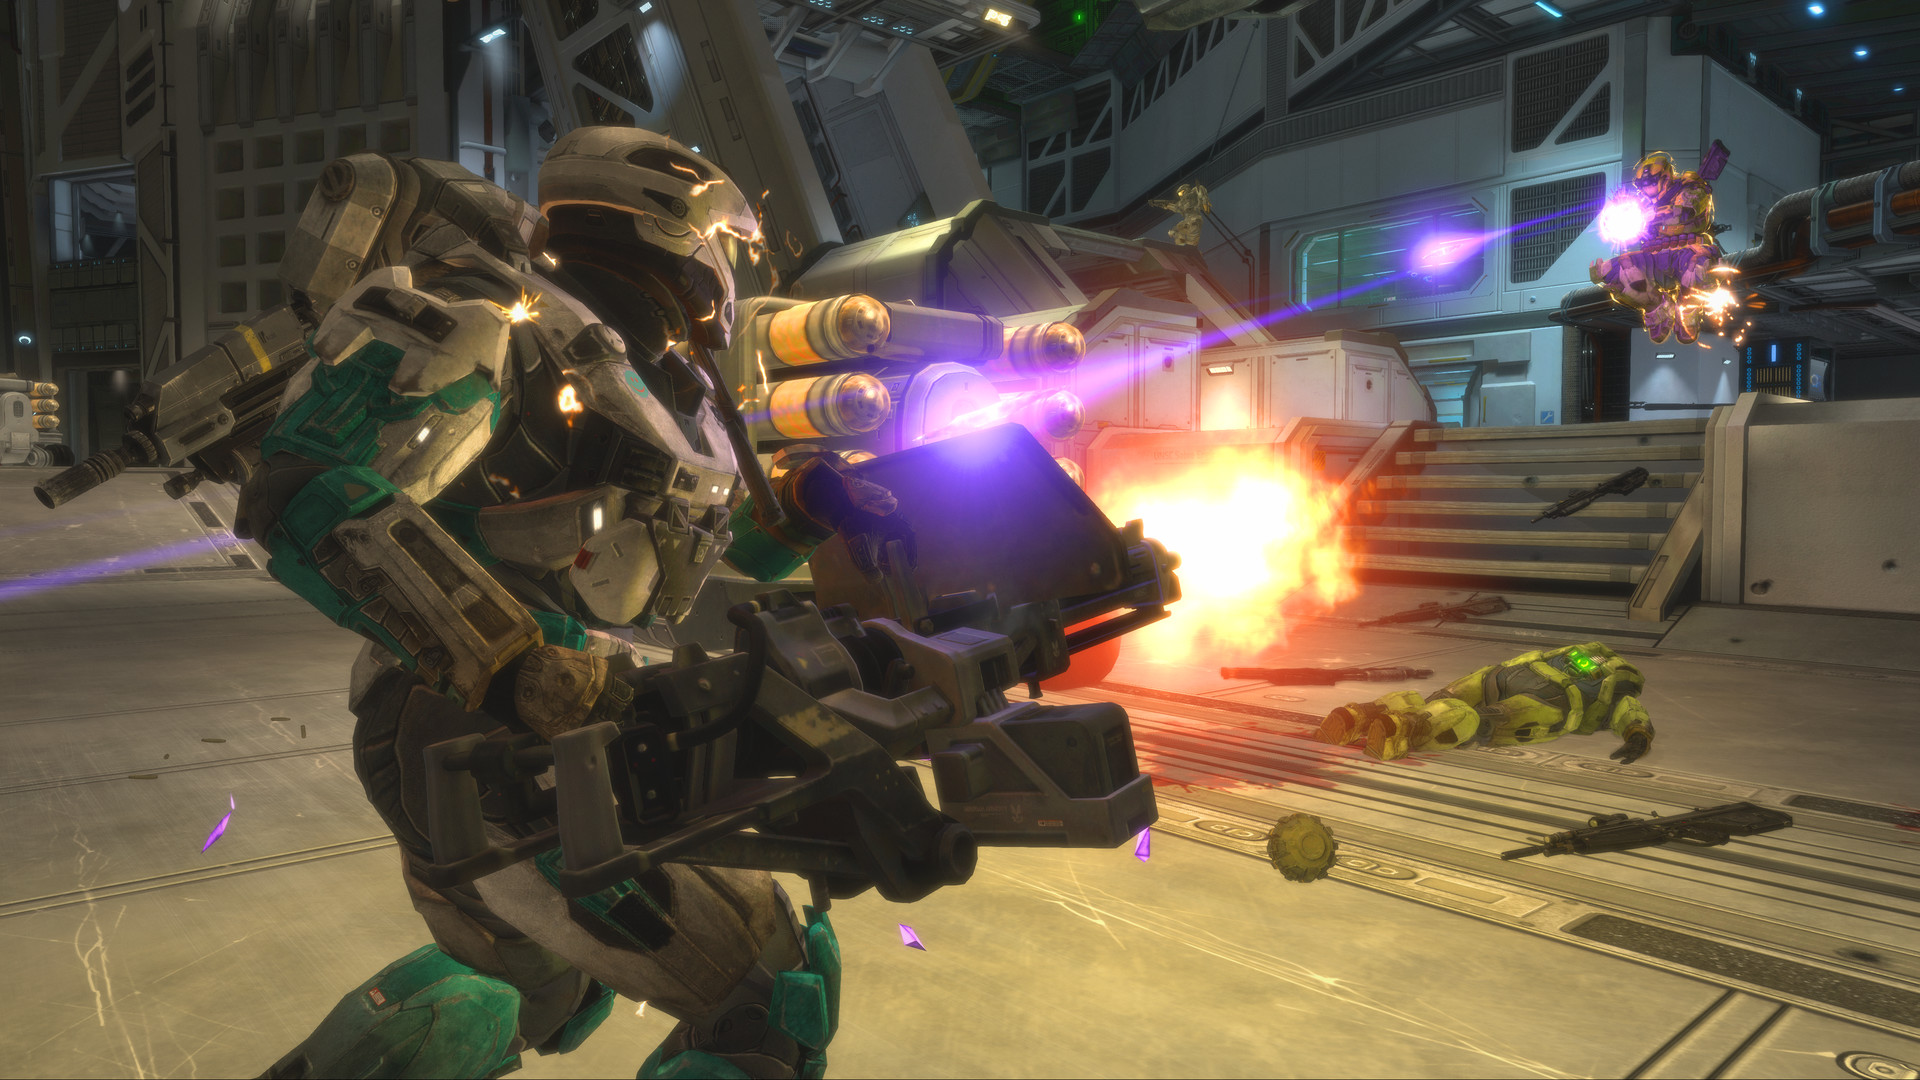 Halo: MCC is now the best-selling game on Steam